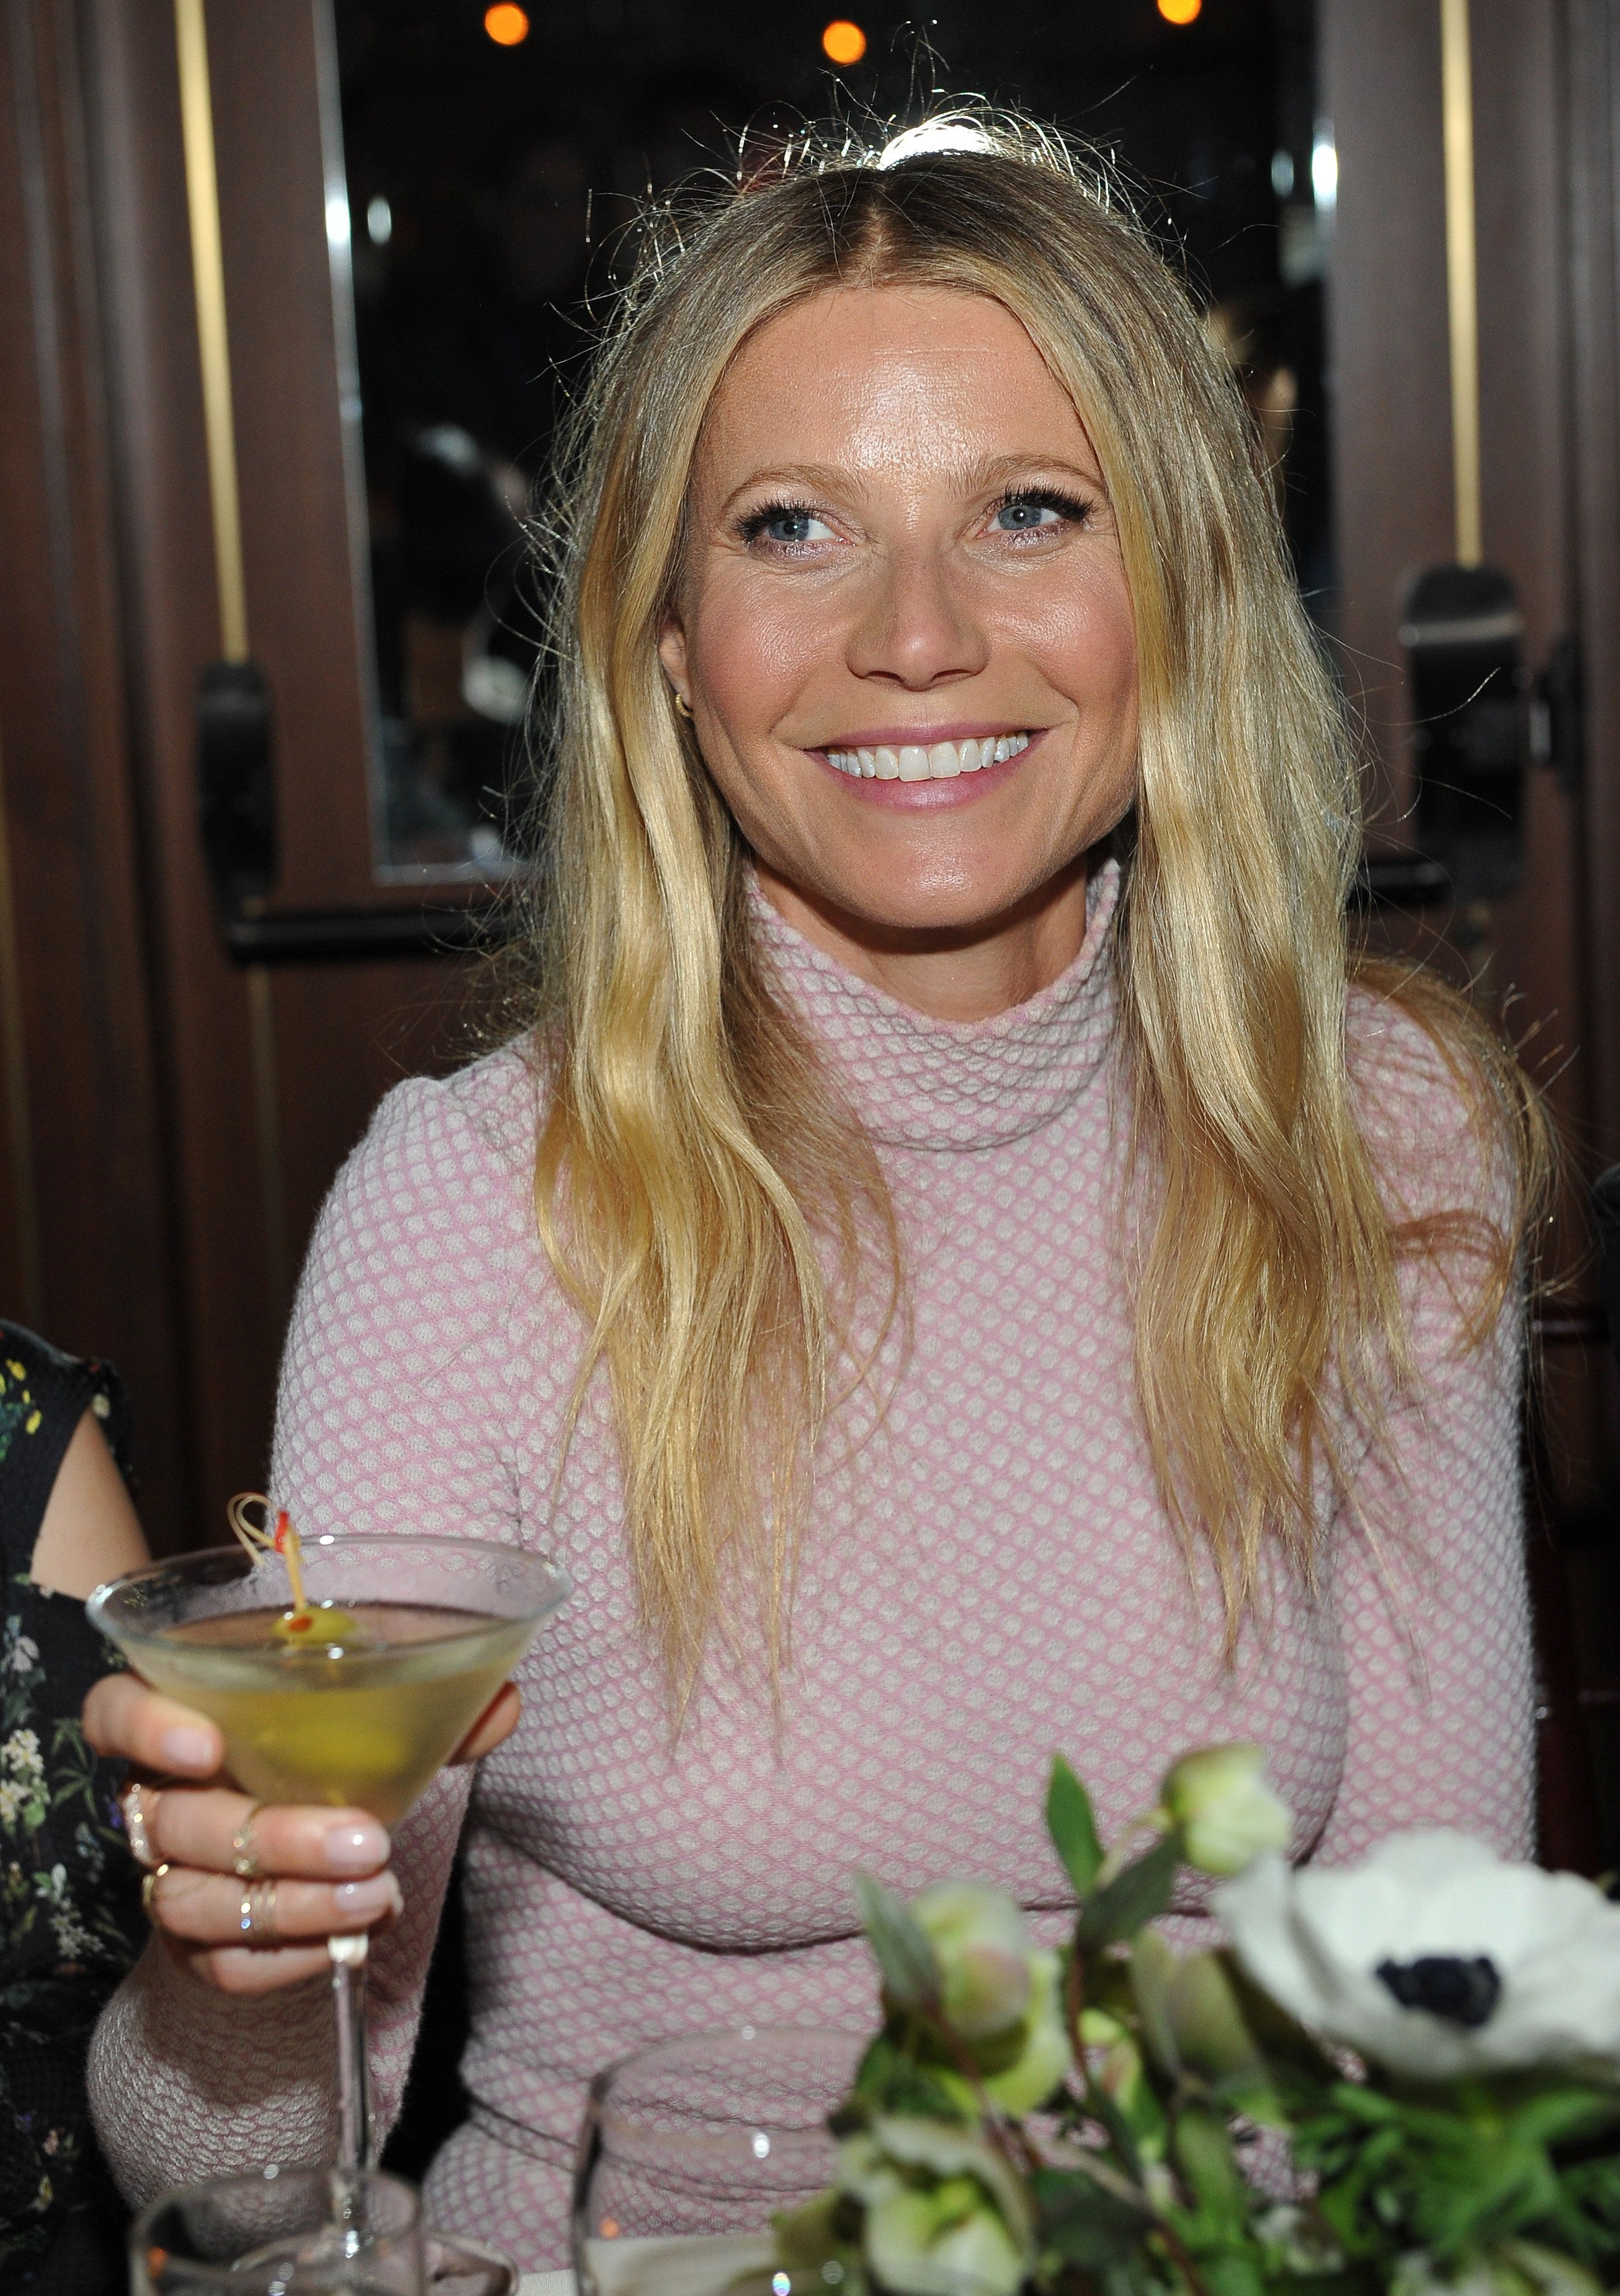 Gwyneth Paltrow admits to having tried apitherapy, an ancient treatment in which getting stung by bees is believed to treat diseases such as arthritis and cancer.